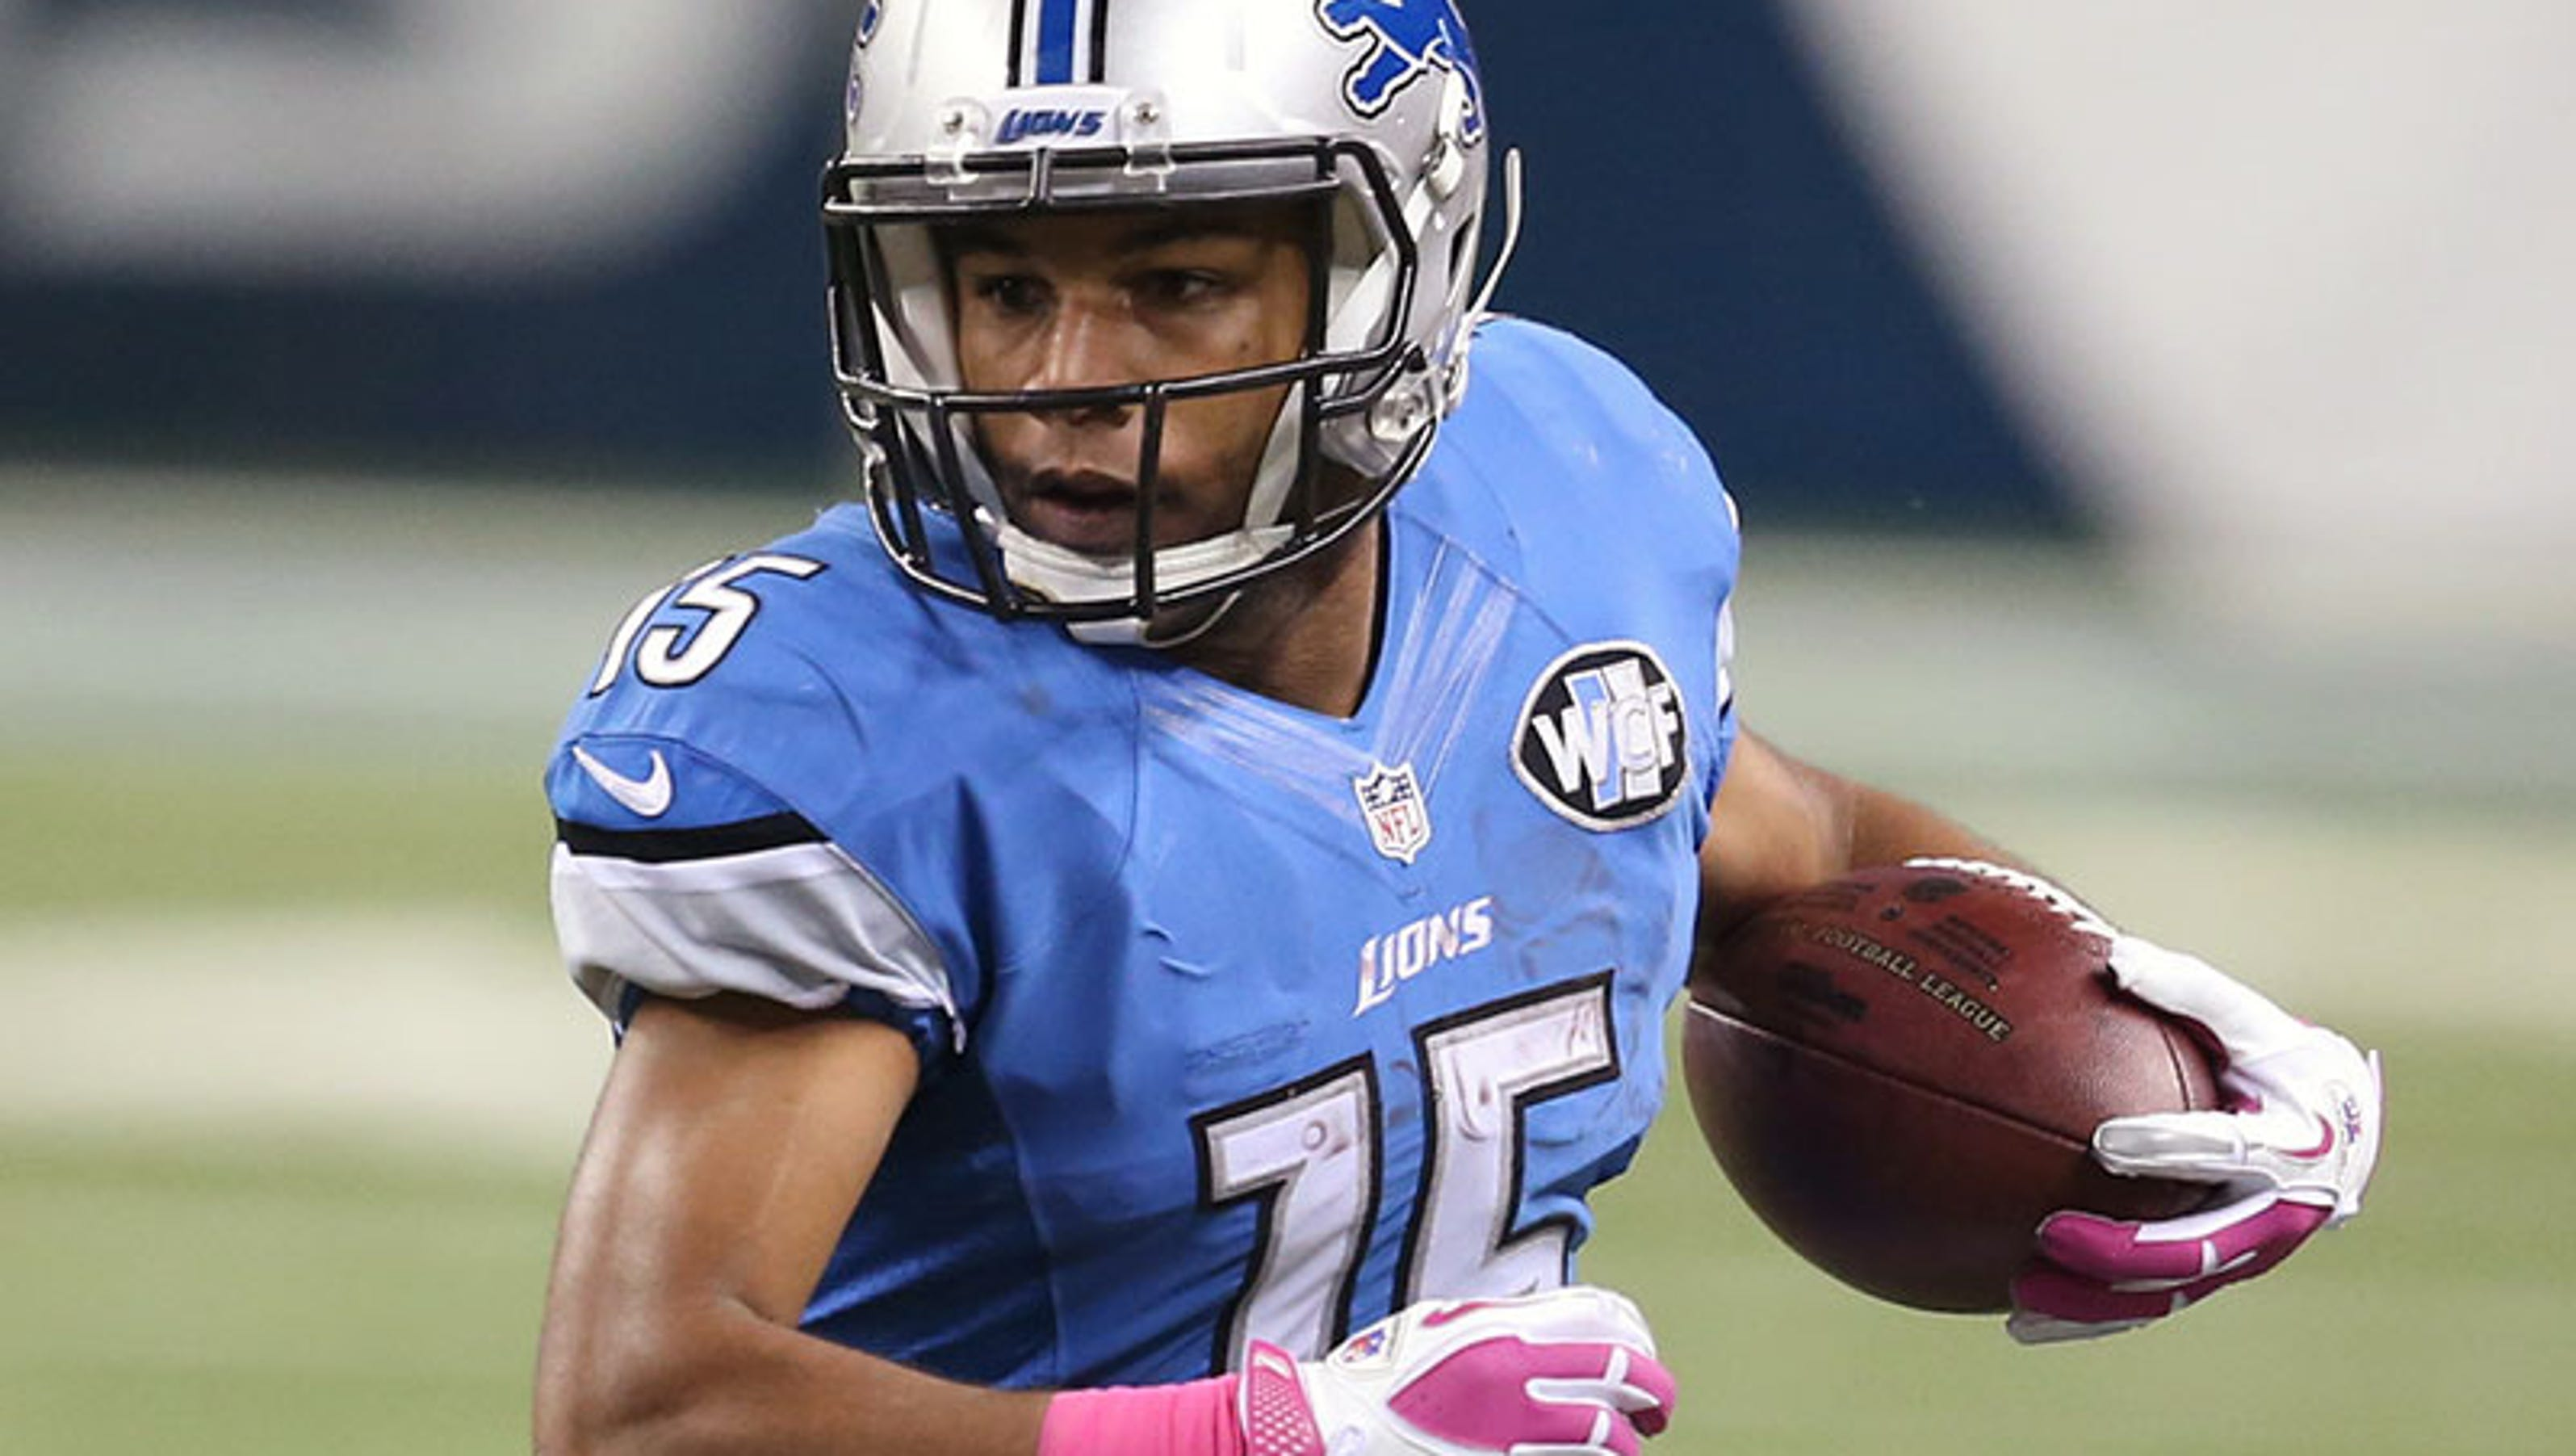 golden tate - photo #19